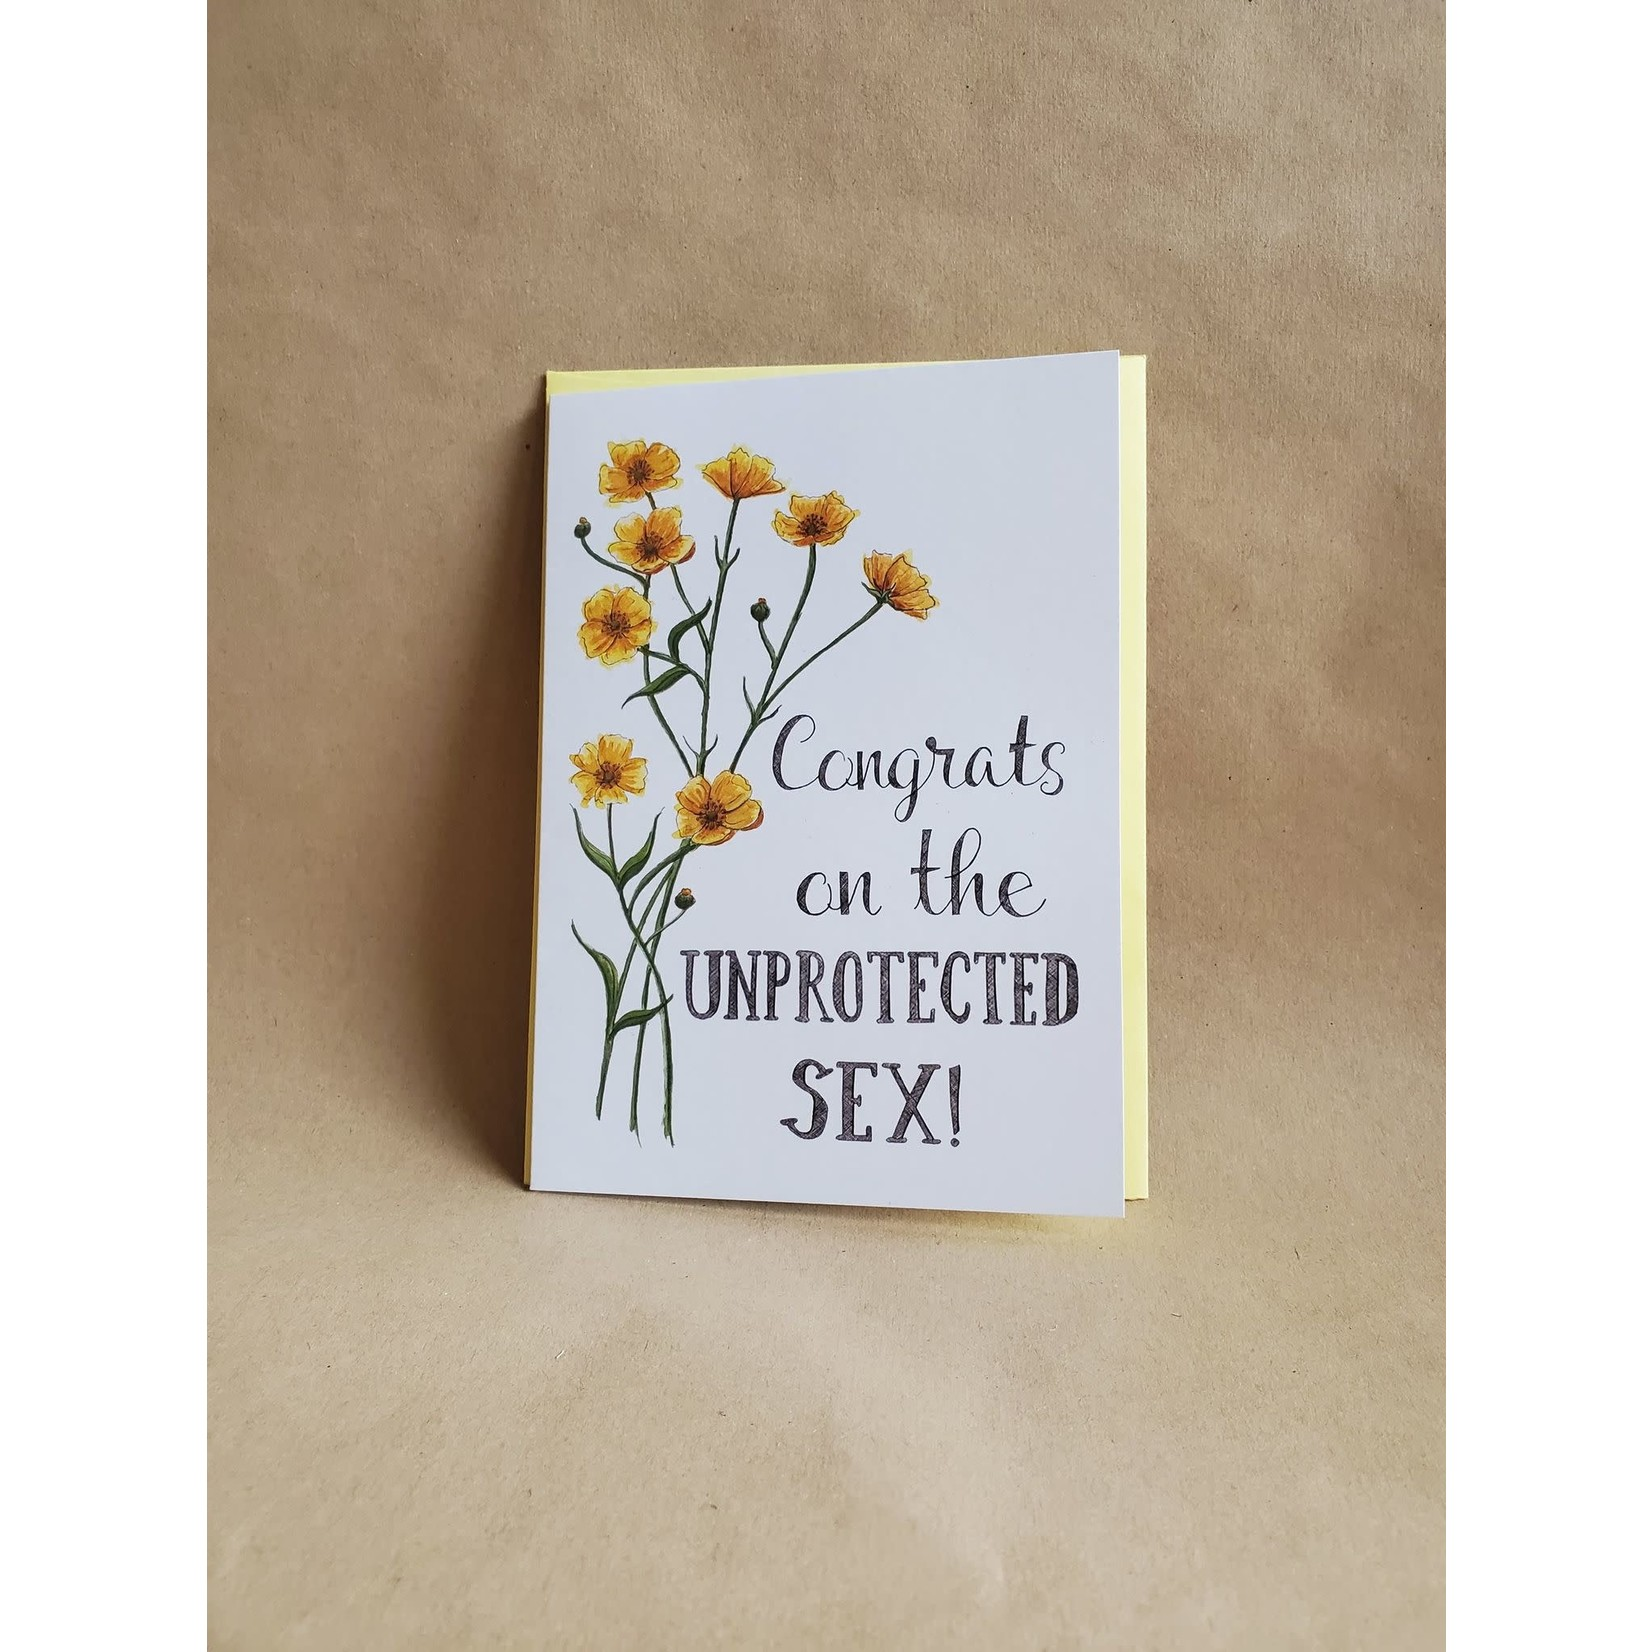 Congrats on the unprotected sex card